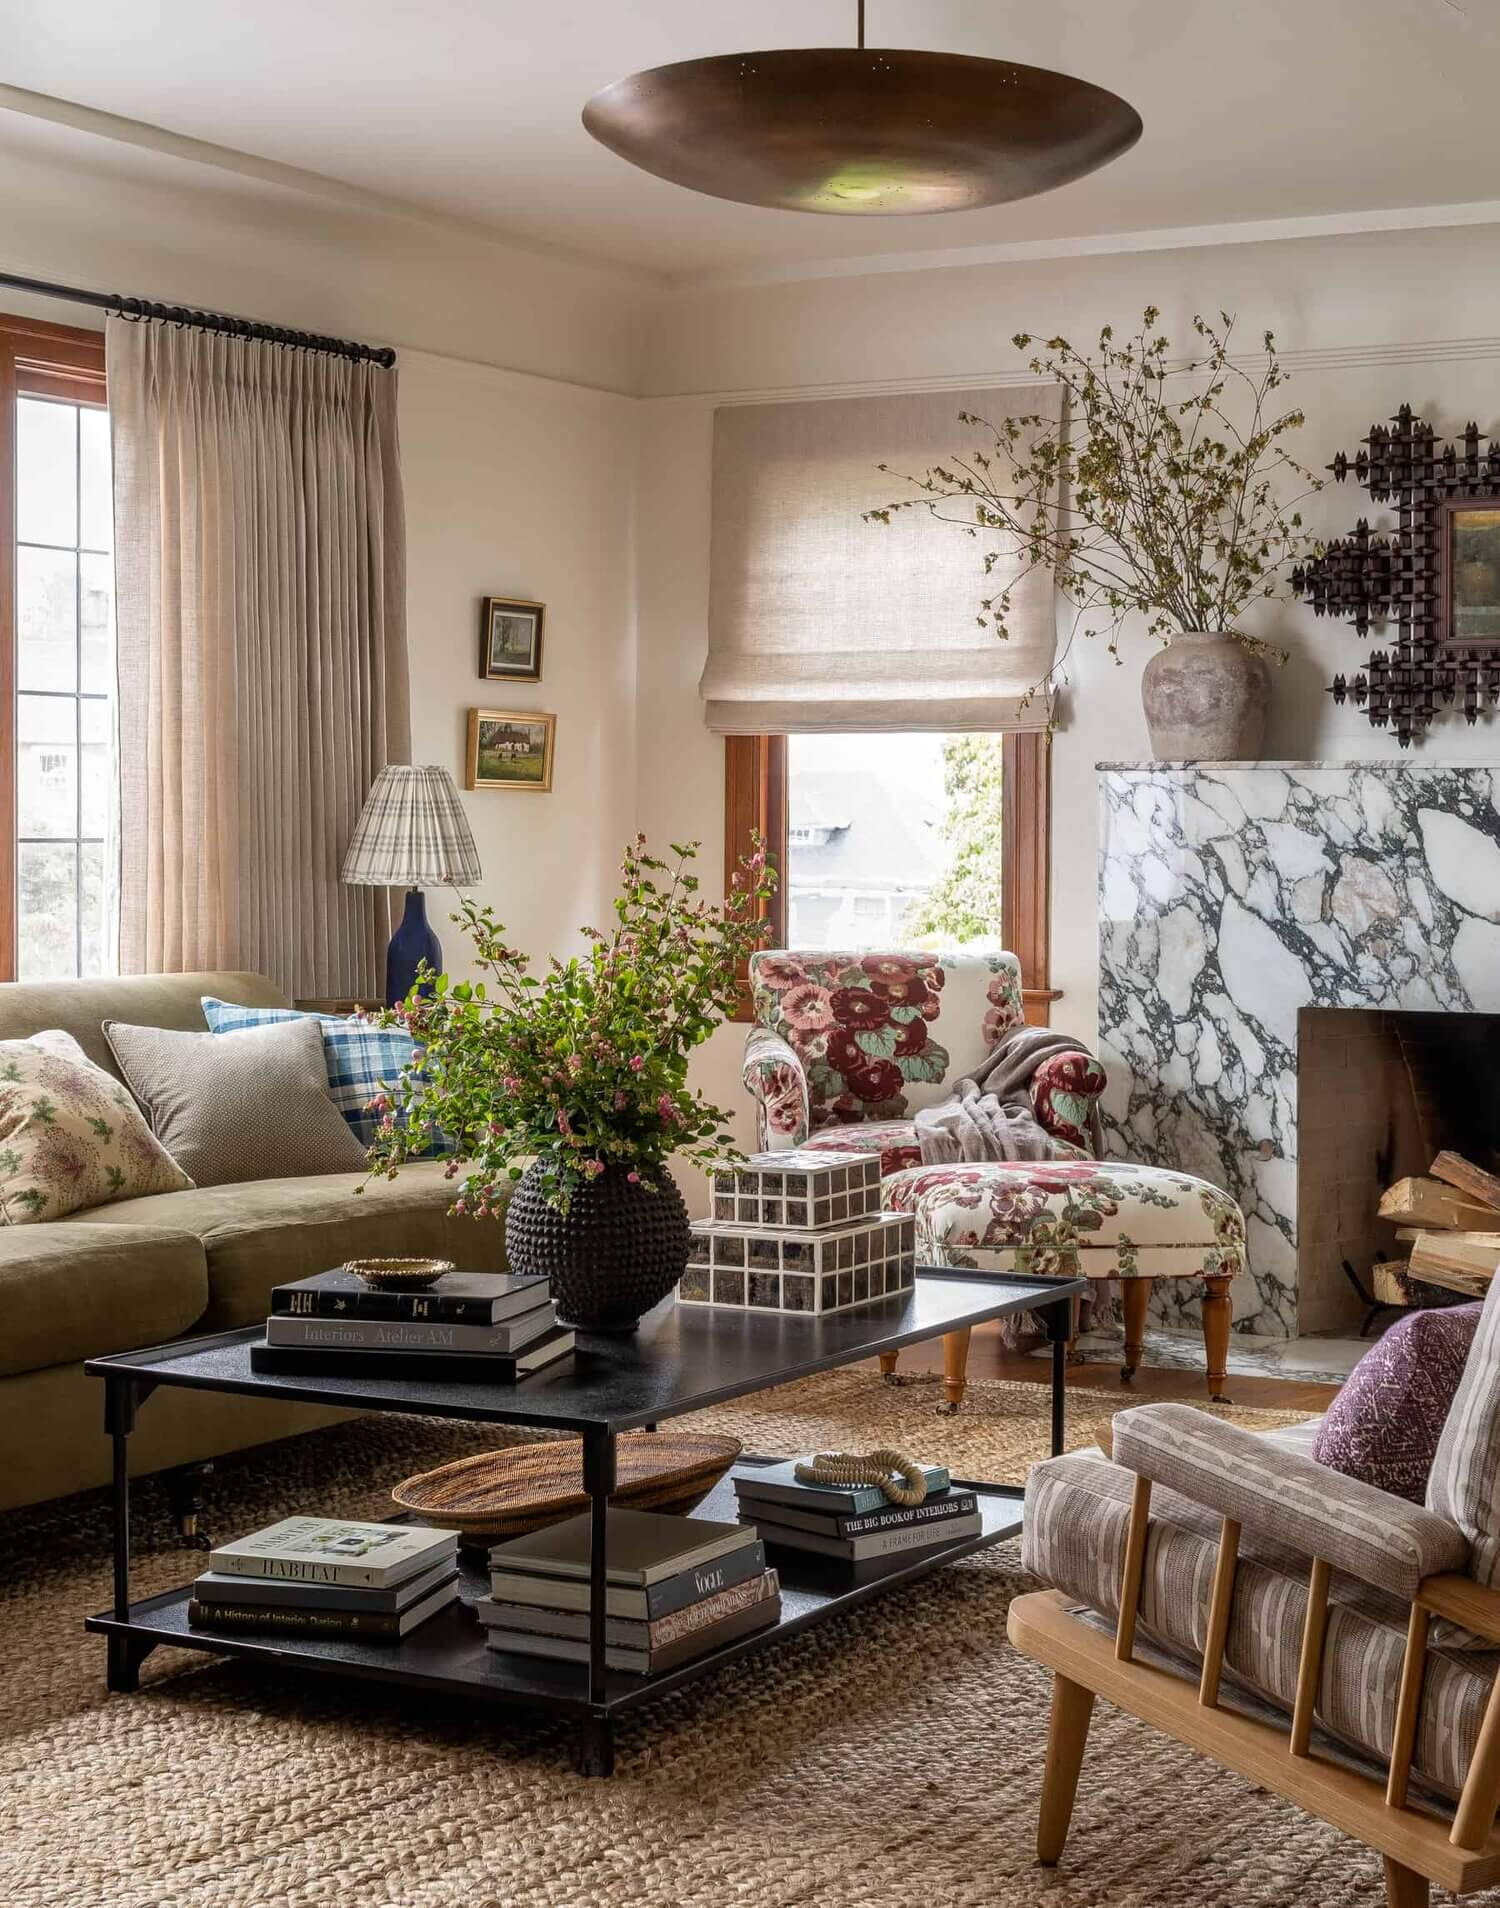 Soothing Colors in Designer Heidi Caillier's Eclectic Washington Home